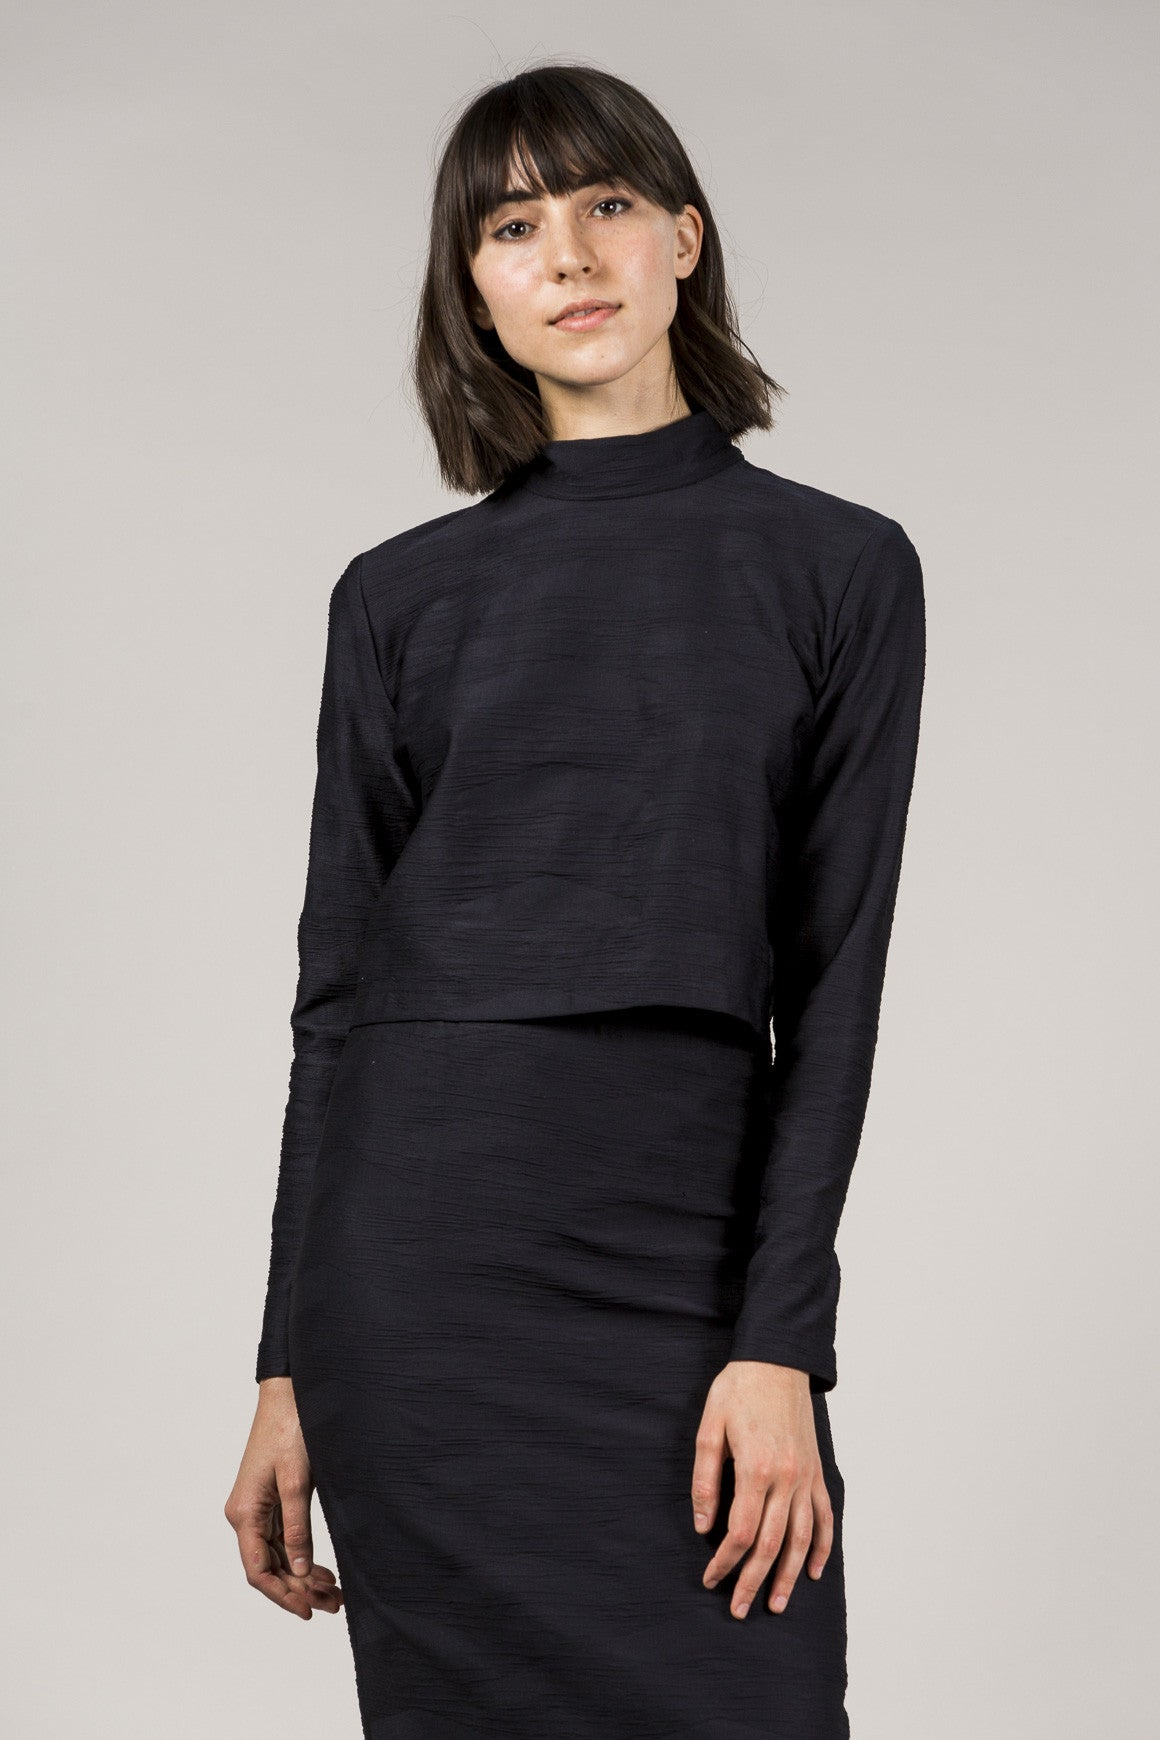 L/S Mock Neck Top, Black by Suzanne Rae @ Kick Pleat - 1